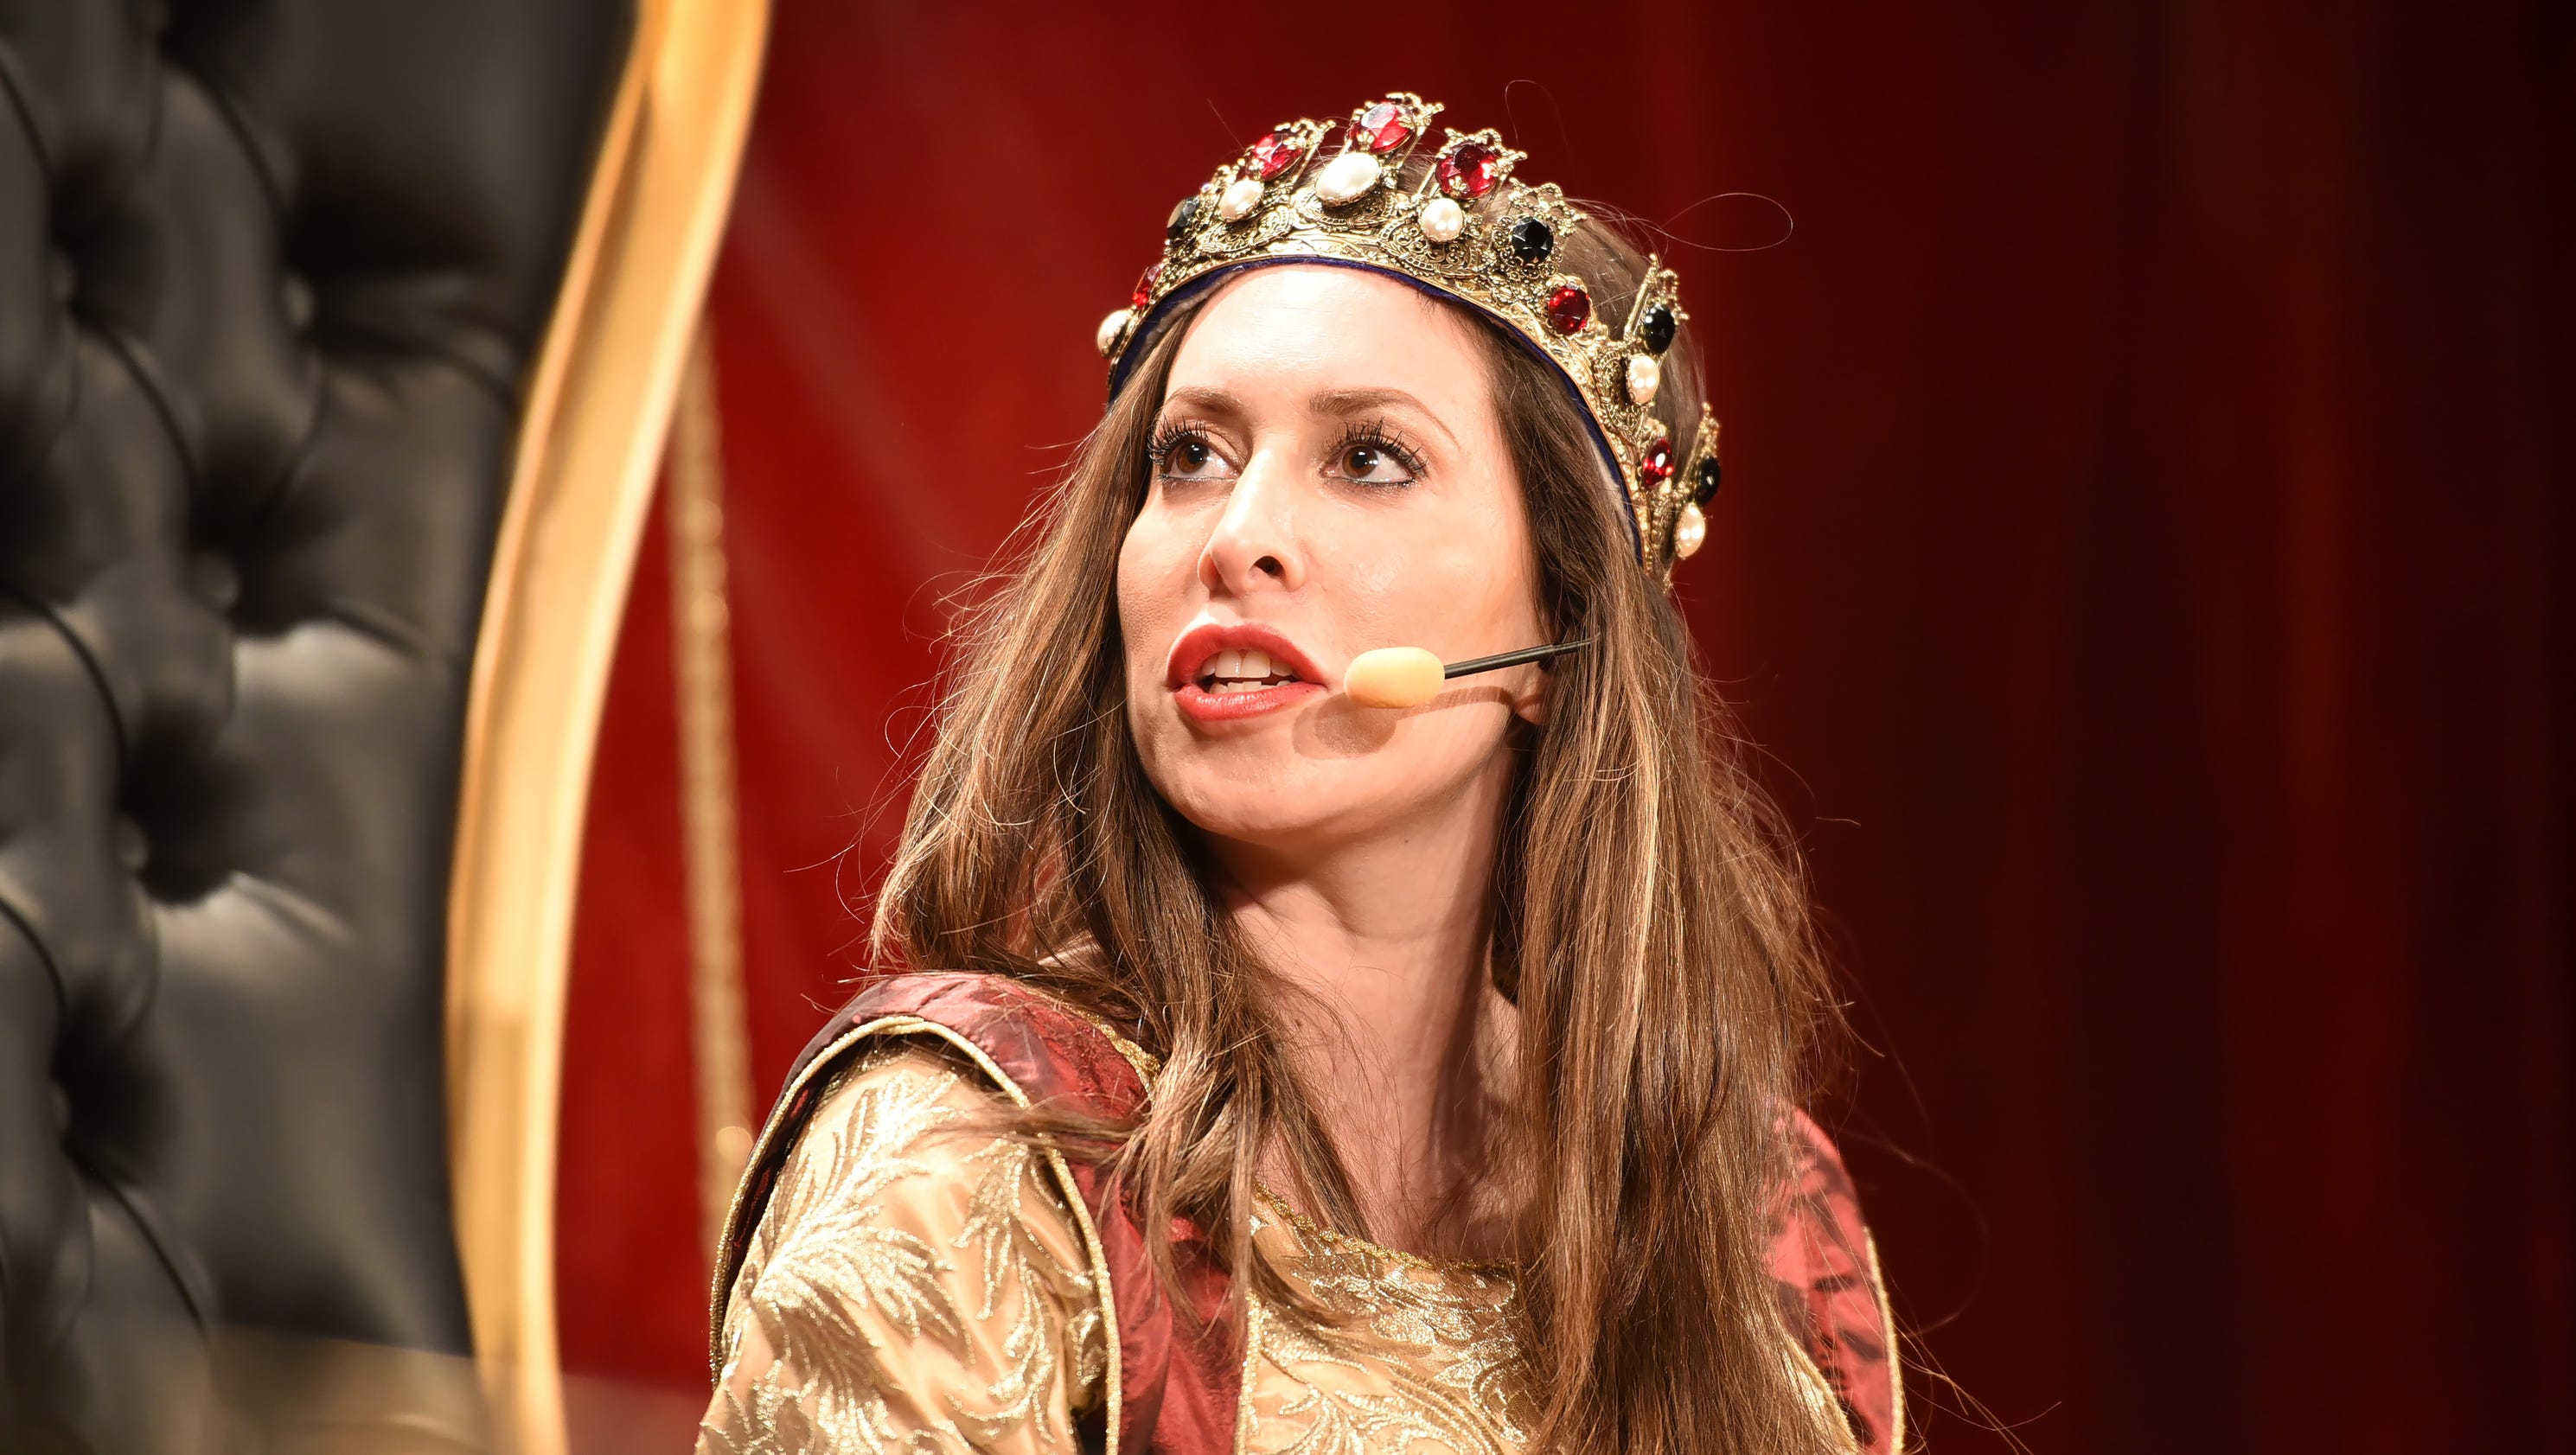 Medieval Times: For The First Time, A Queen Takes The Throne